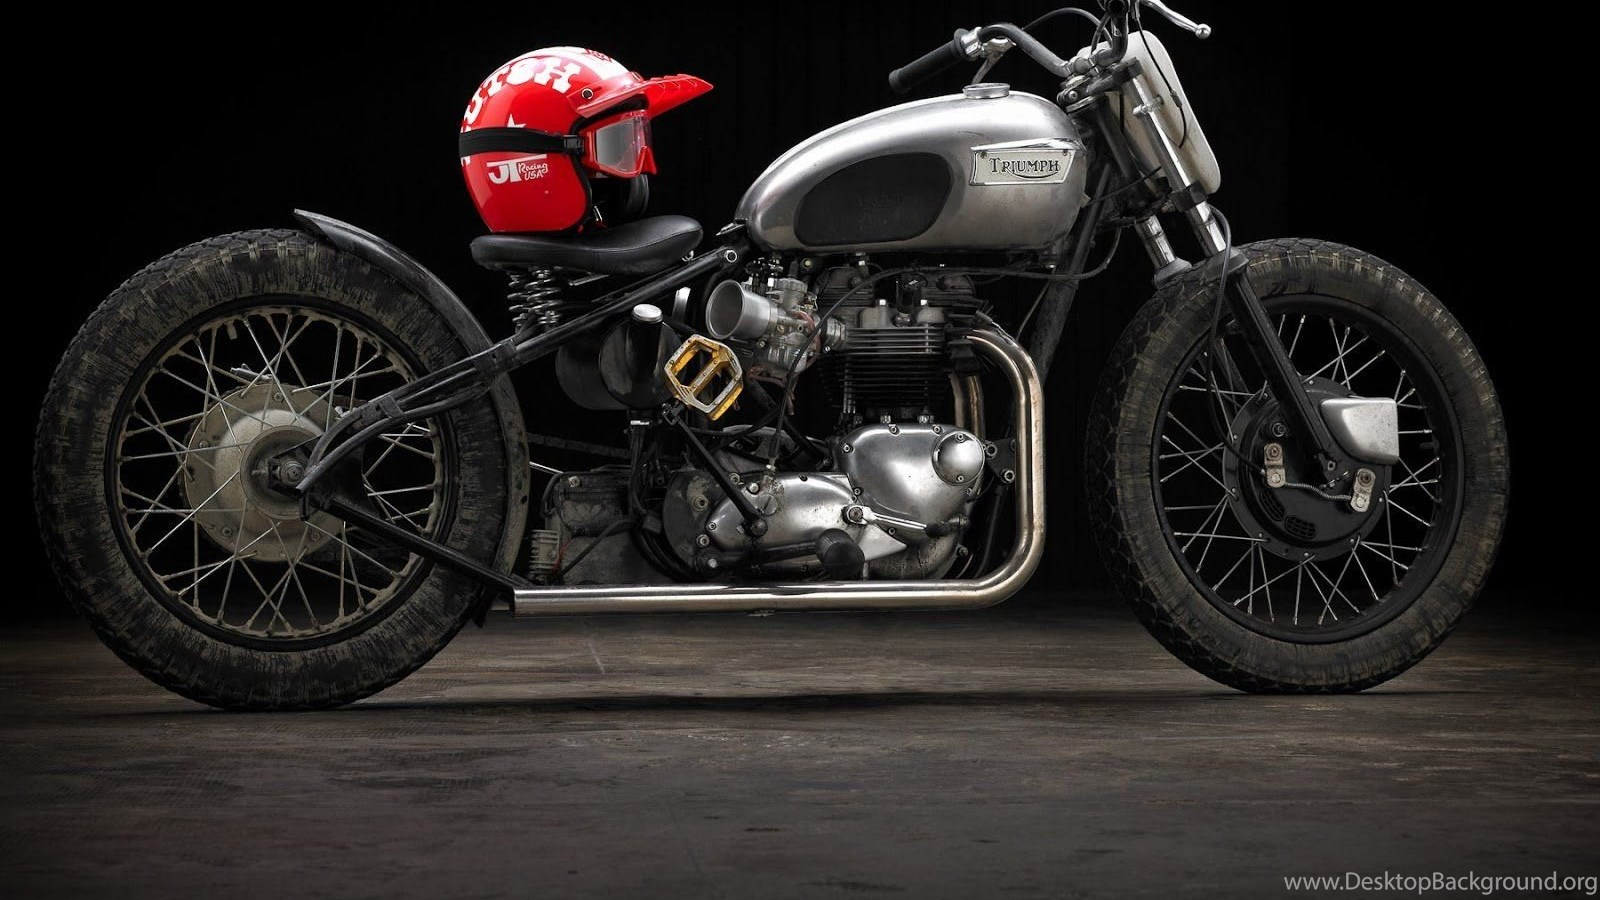 Bobber Motorcycle Custom Motorbike Bike Chopper Hot Rod Rods Desktop Background